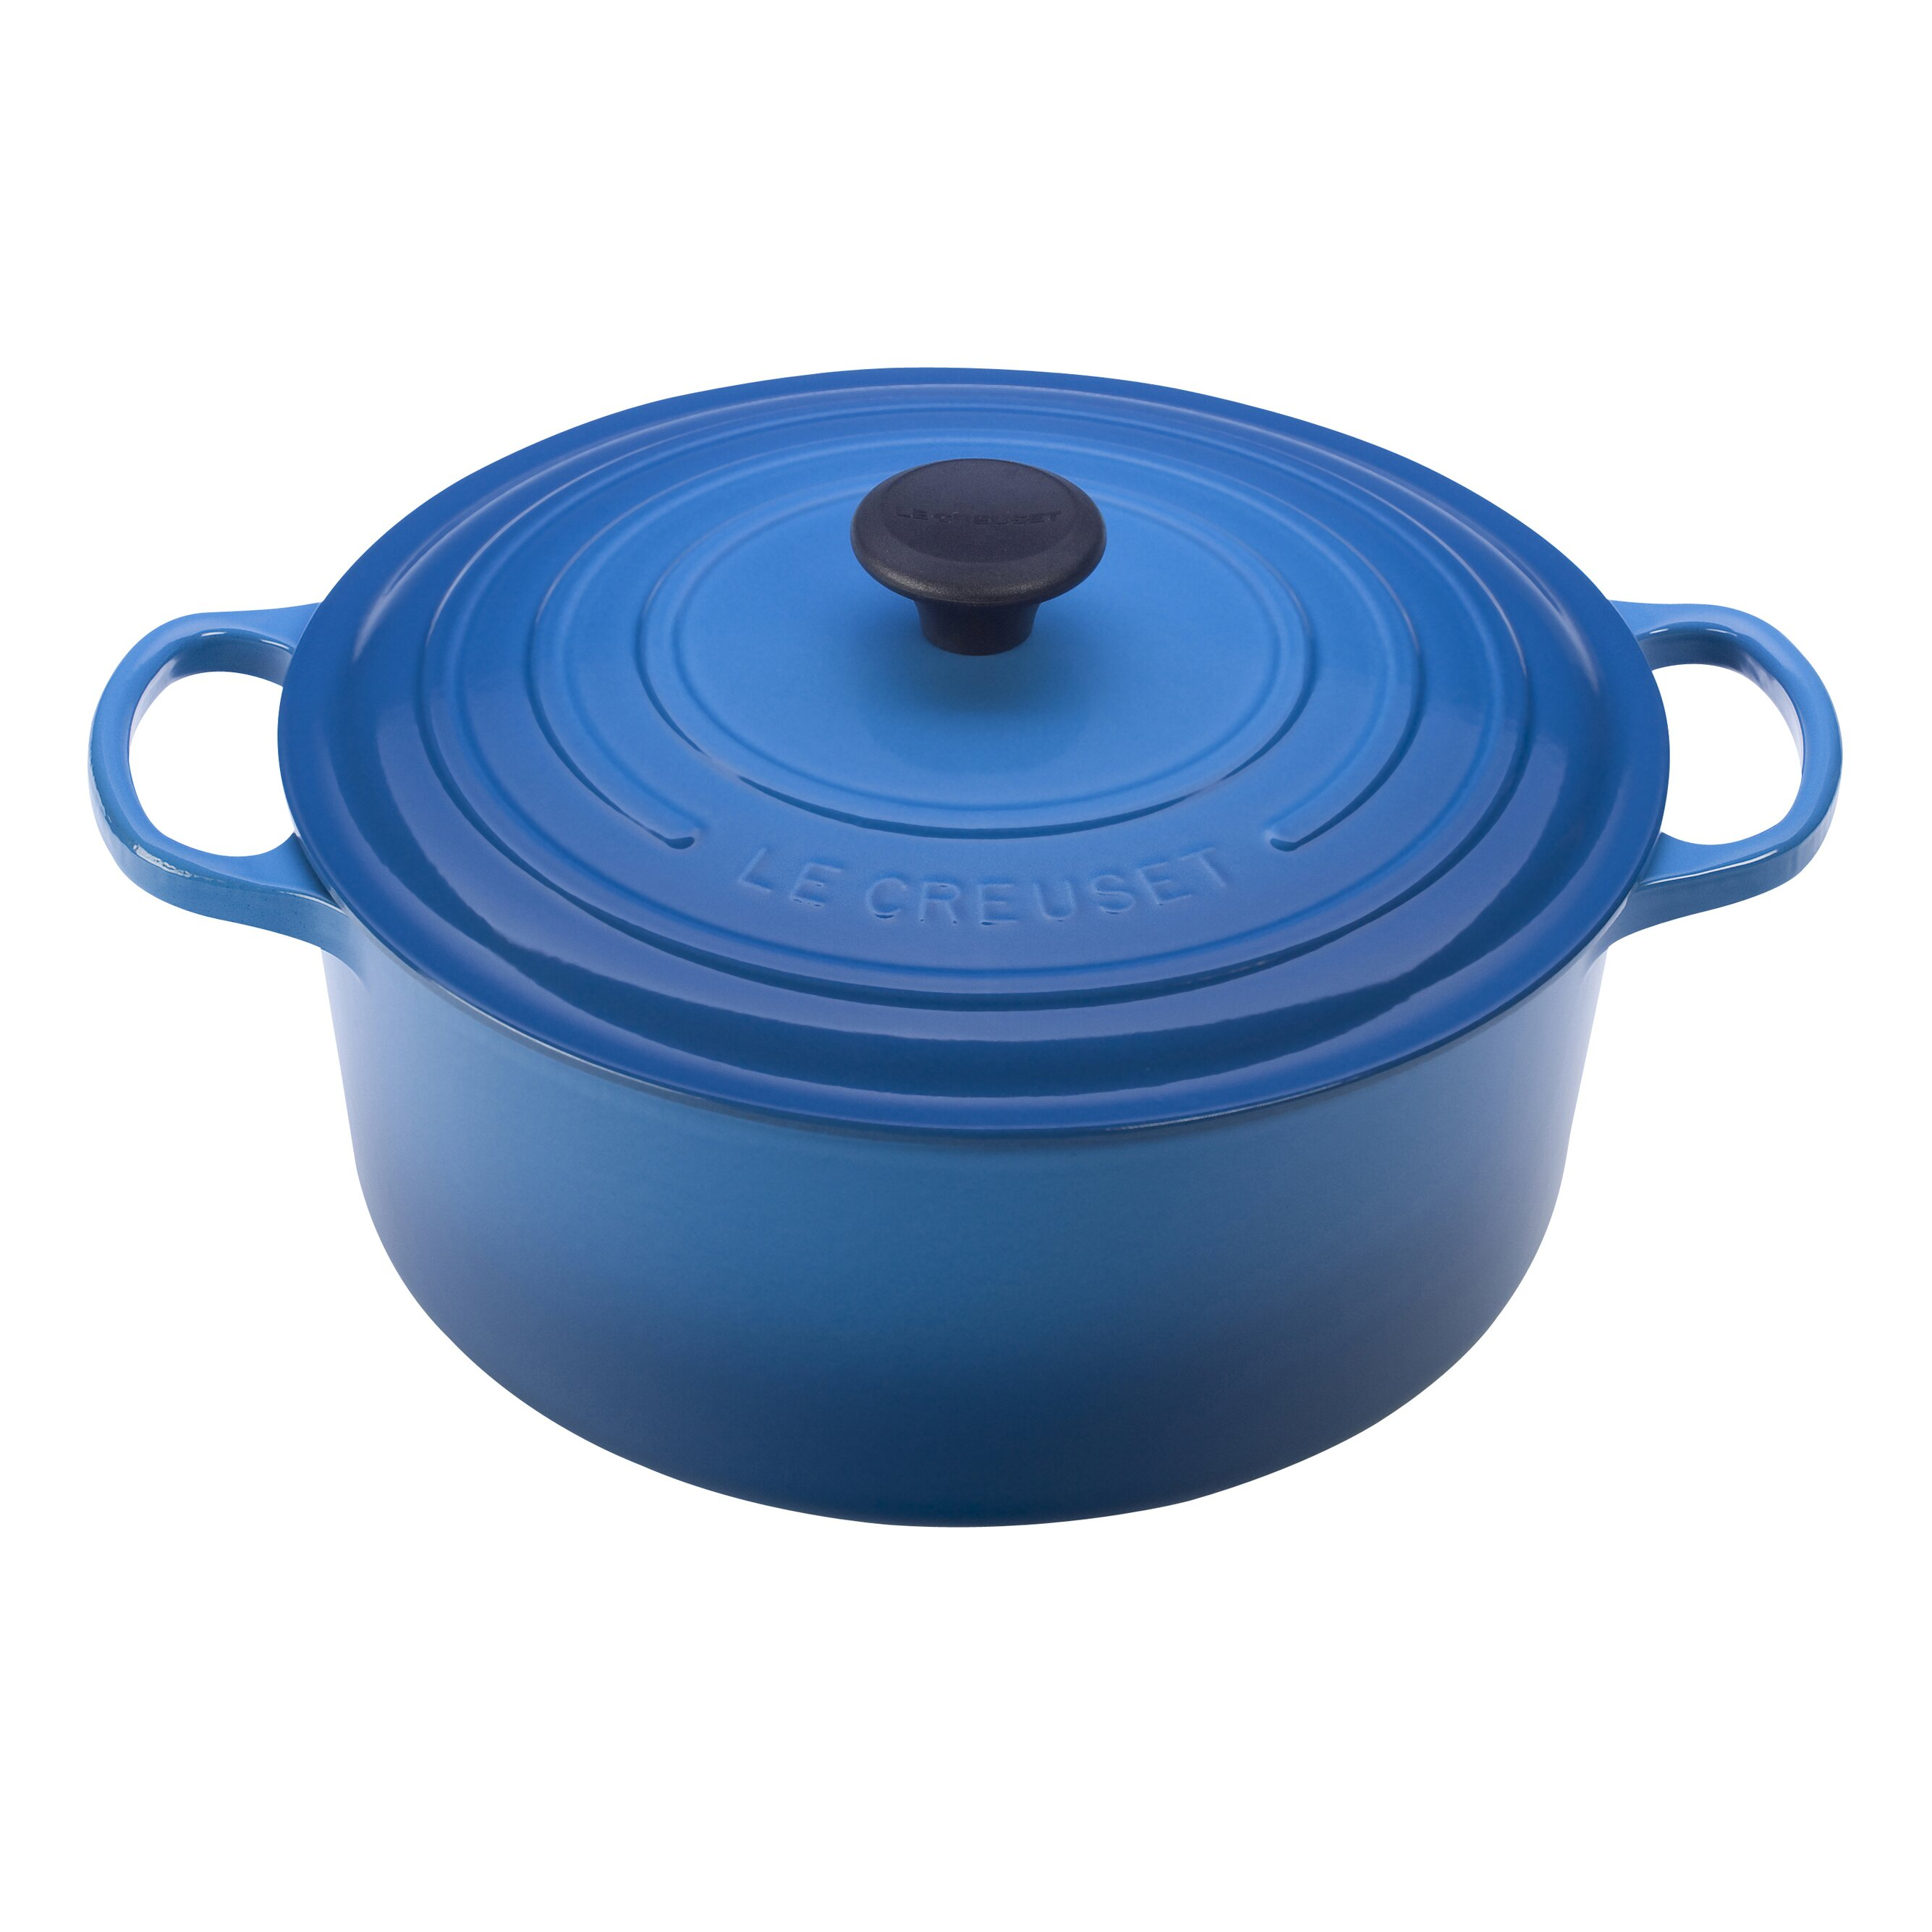 le creuset enameled cast iron round french oven reviews. Black Bedroom Furniture Sets. Home Design Ideas